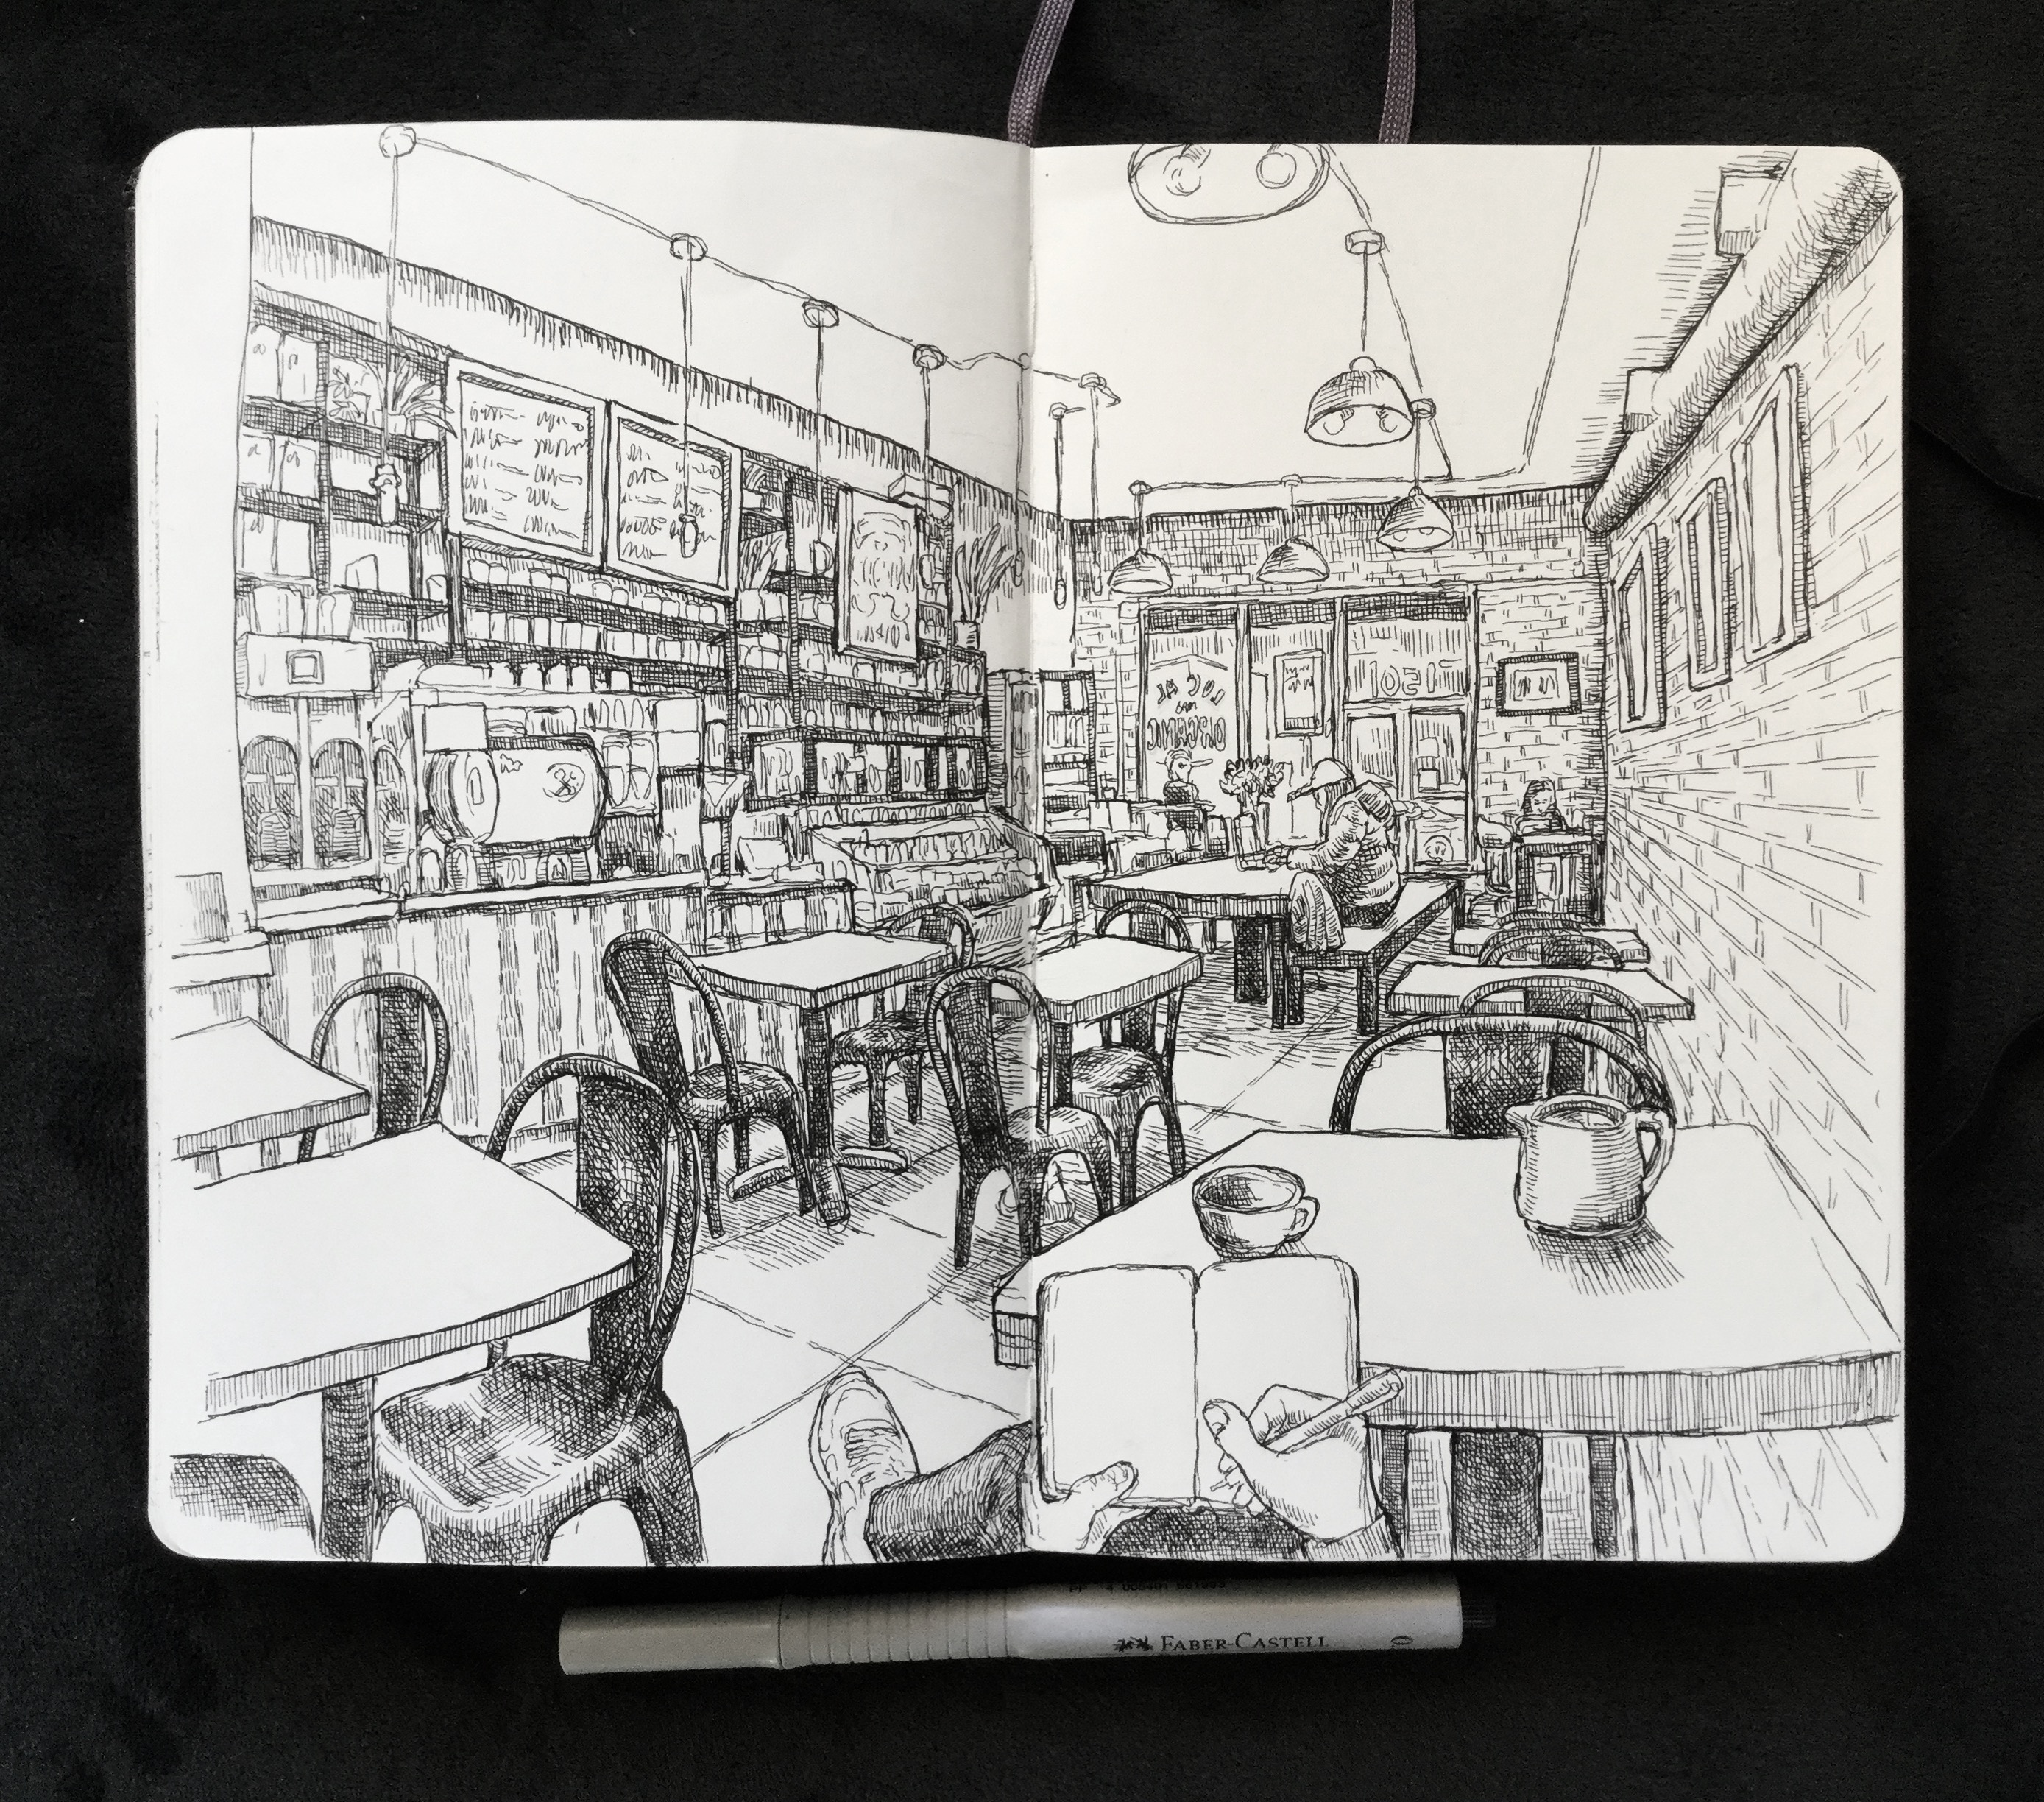 Impressive Pages of Sketchbook Drawings